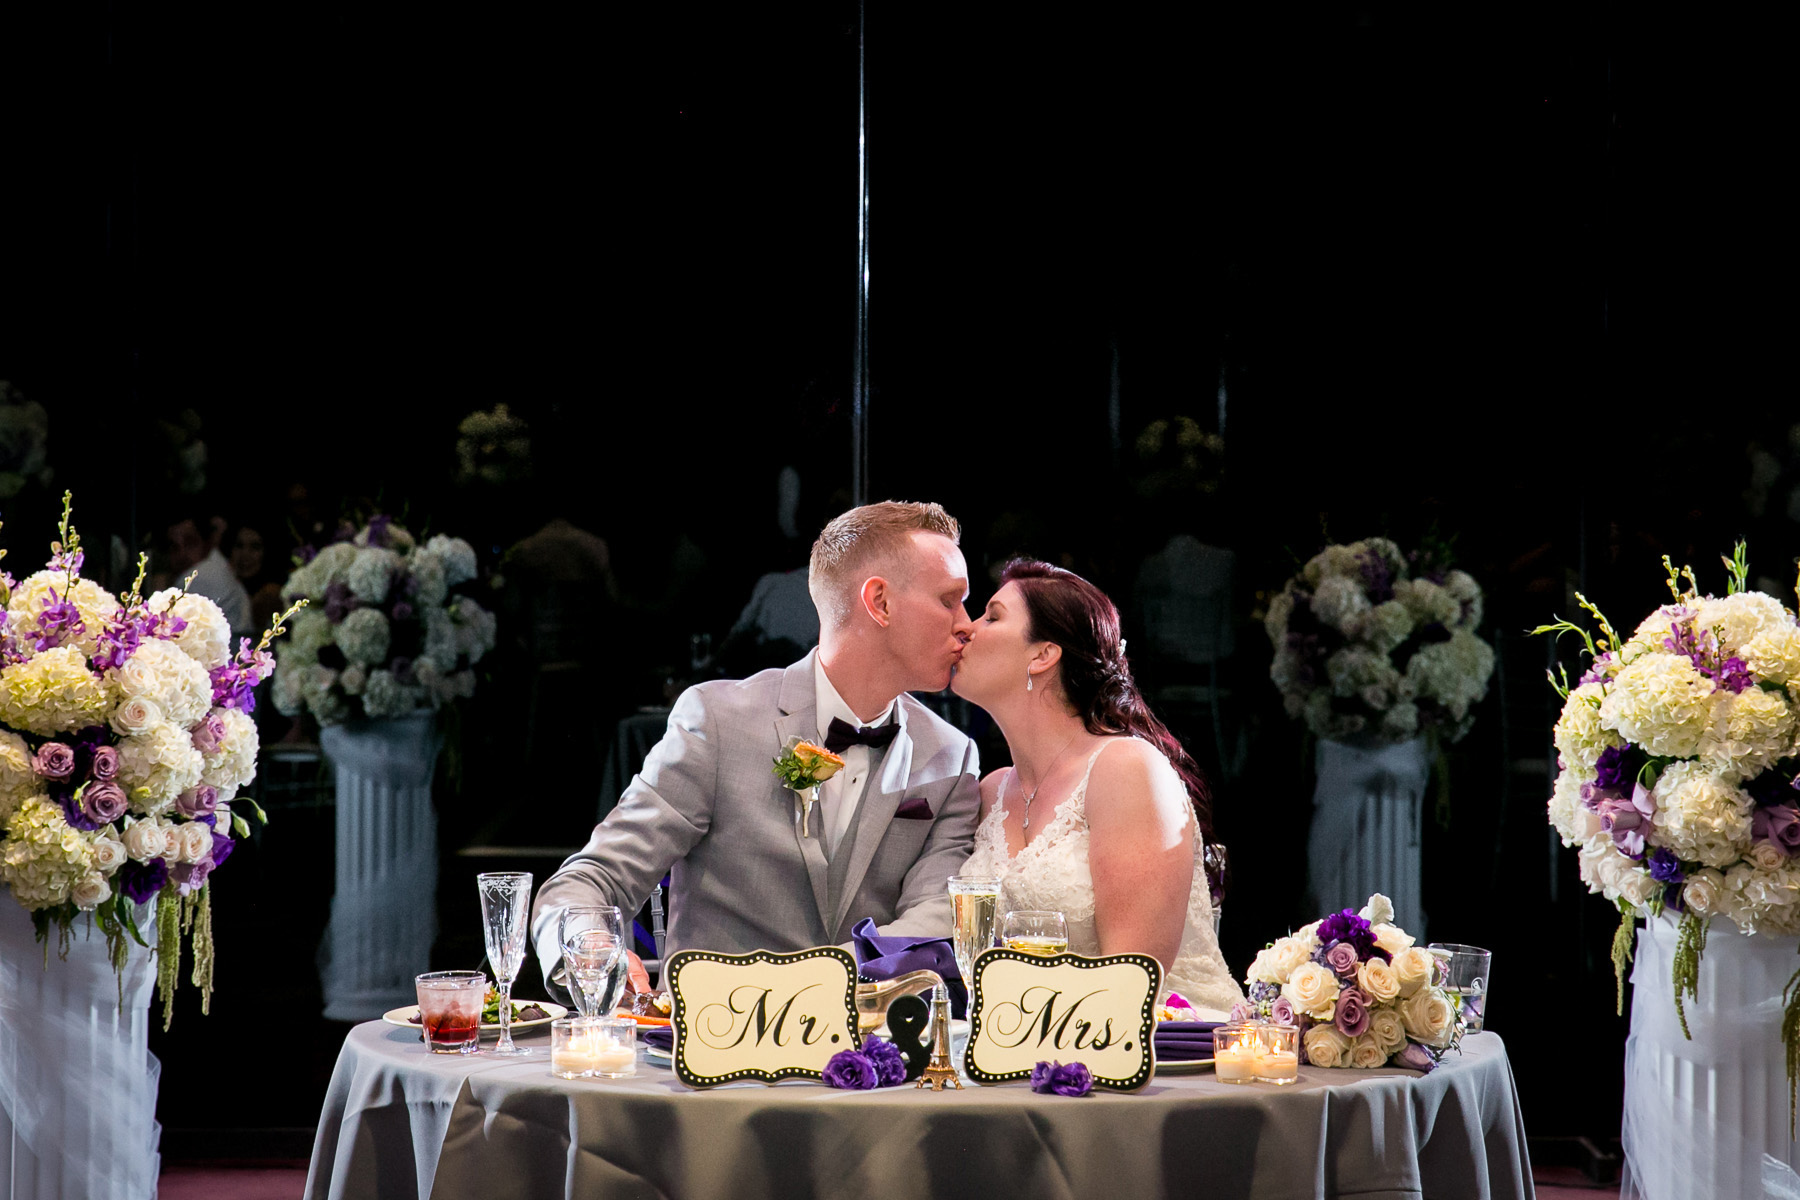 bride and groom kiss at table during wedding reception at dove canyon photographer